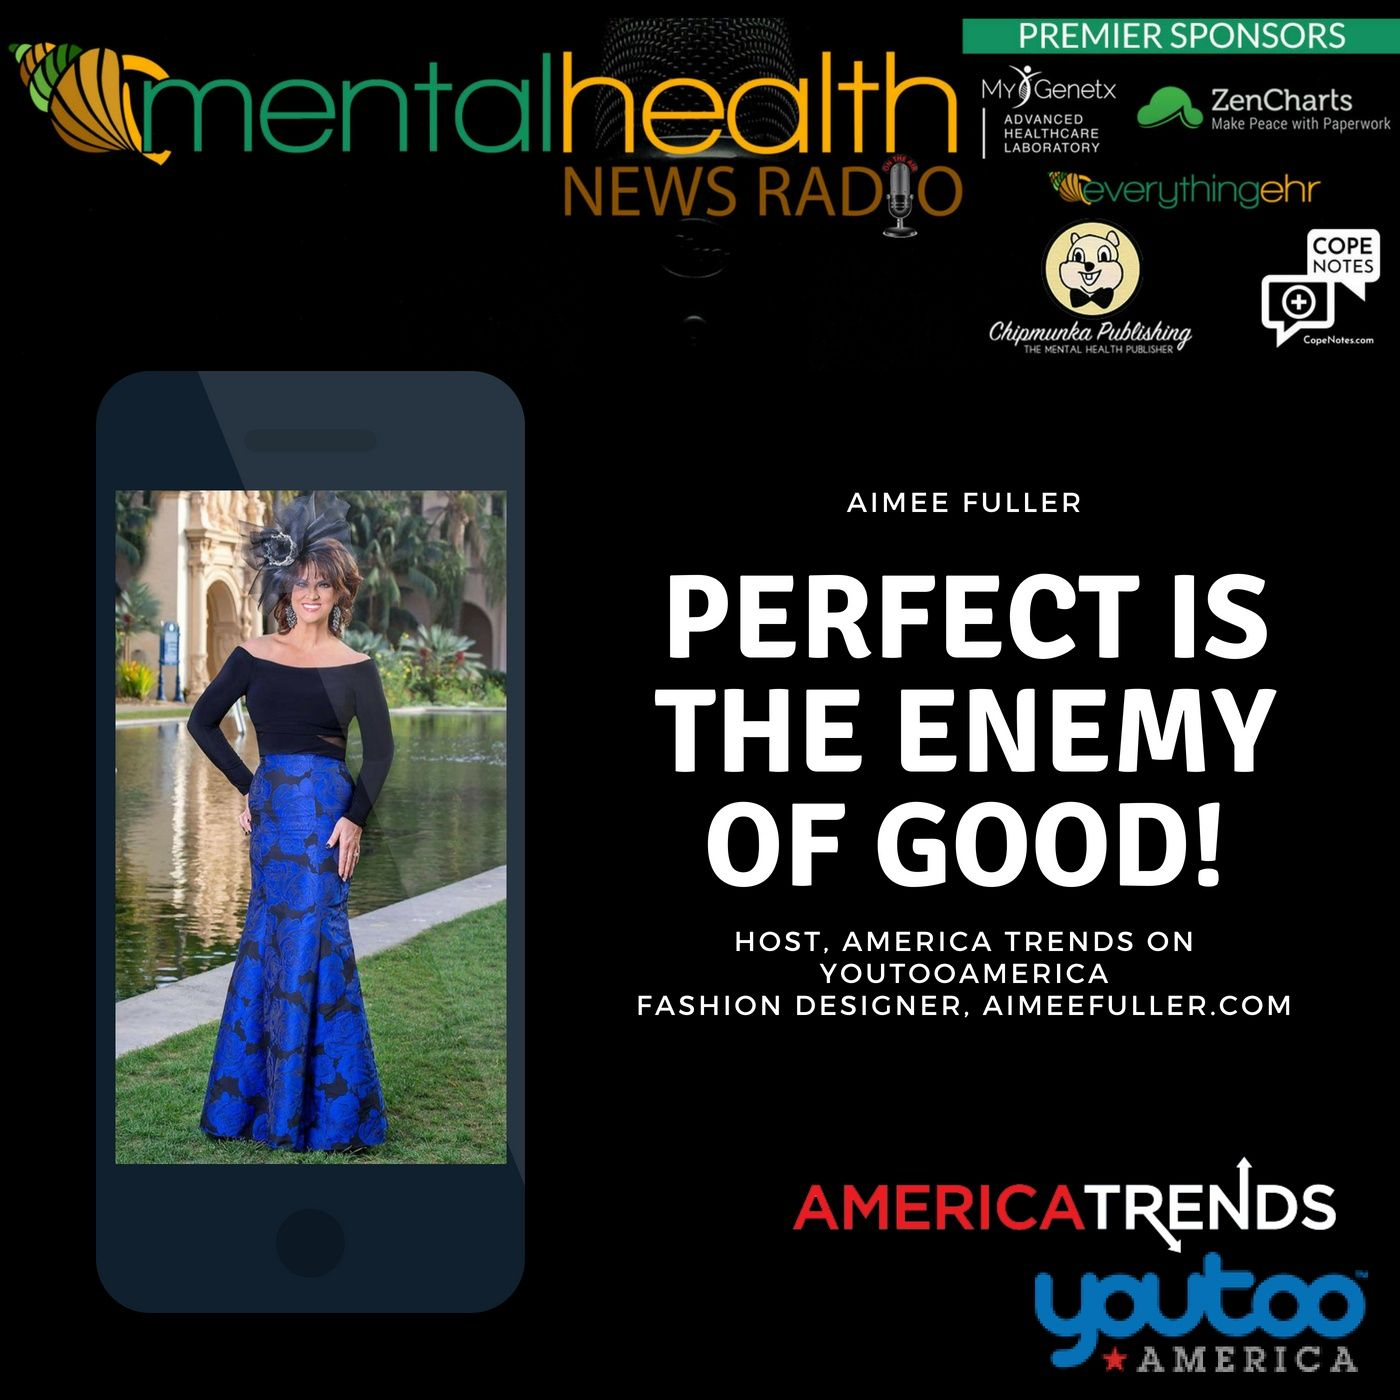 Mental Health News Radio - Perfect is the Enemy of Good with Aimee Fuller